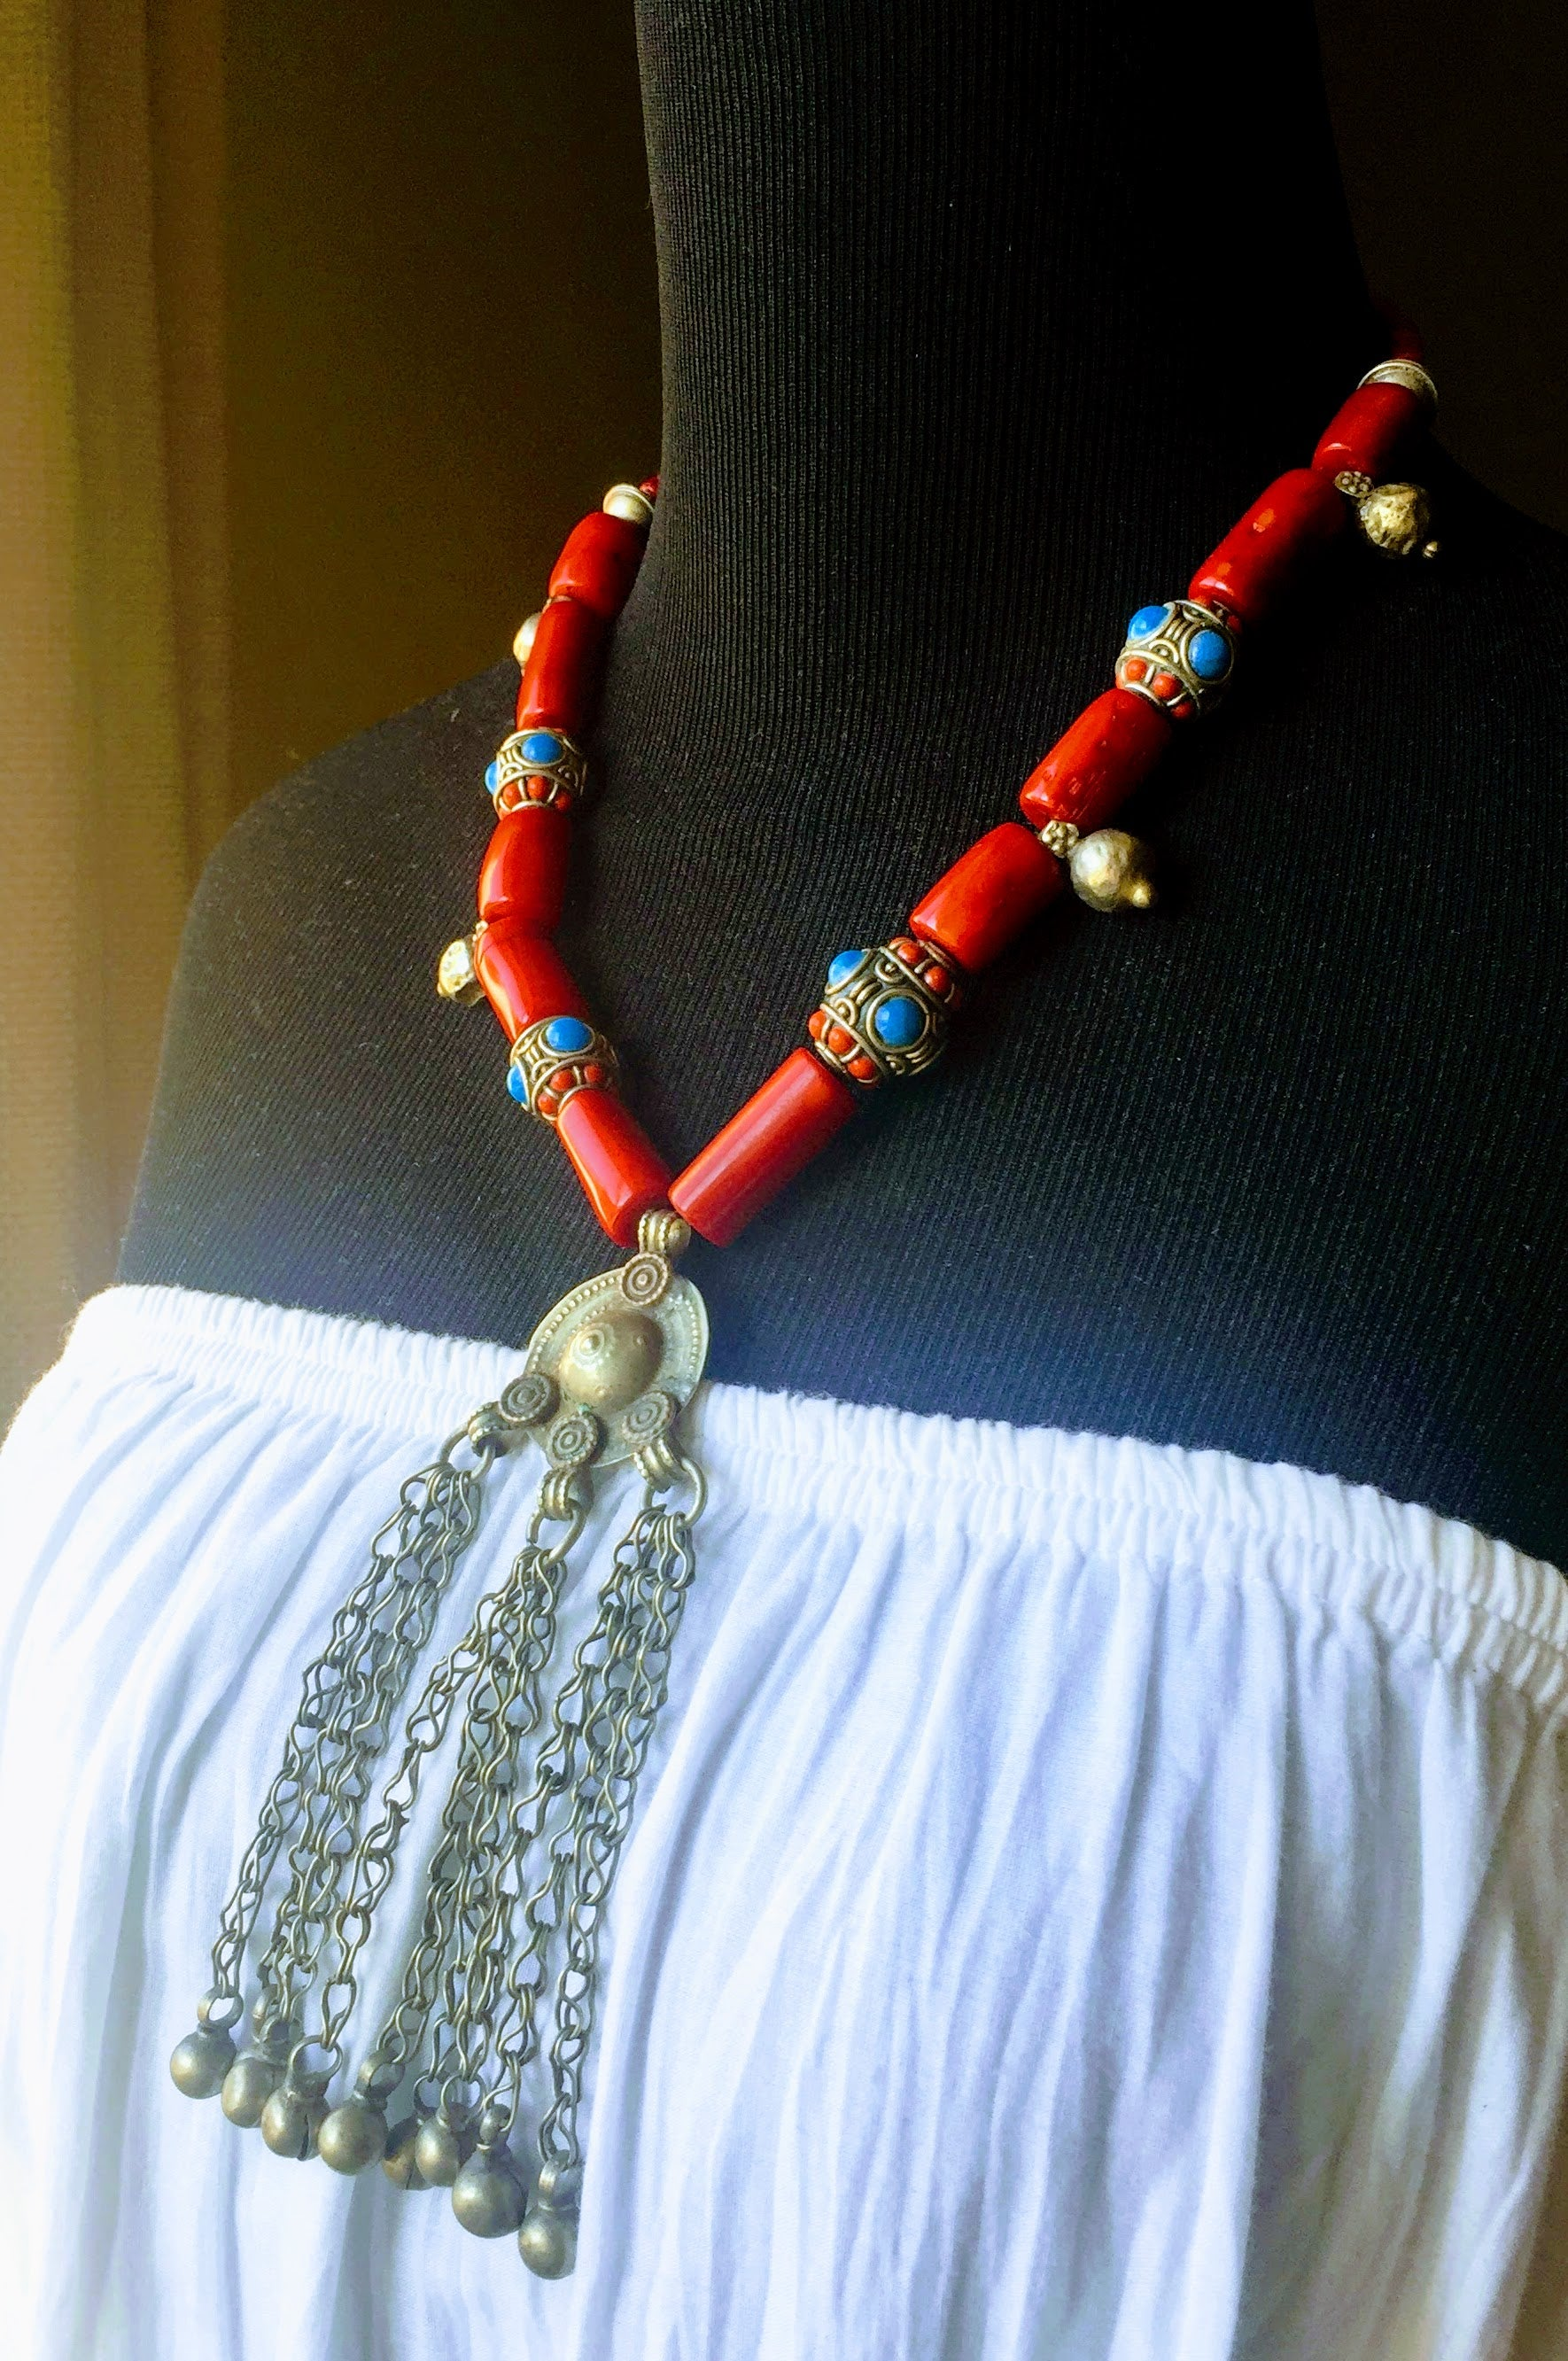 pin berber sterling and this handmade necklace turquoise features a red silver coral it is